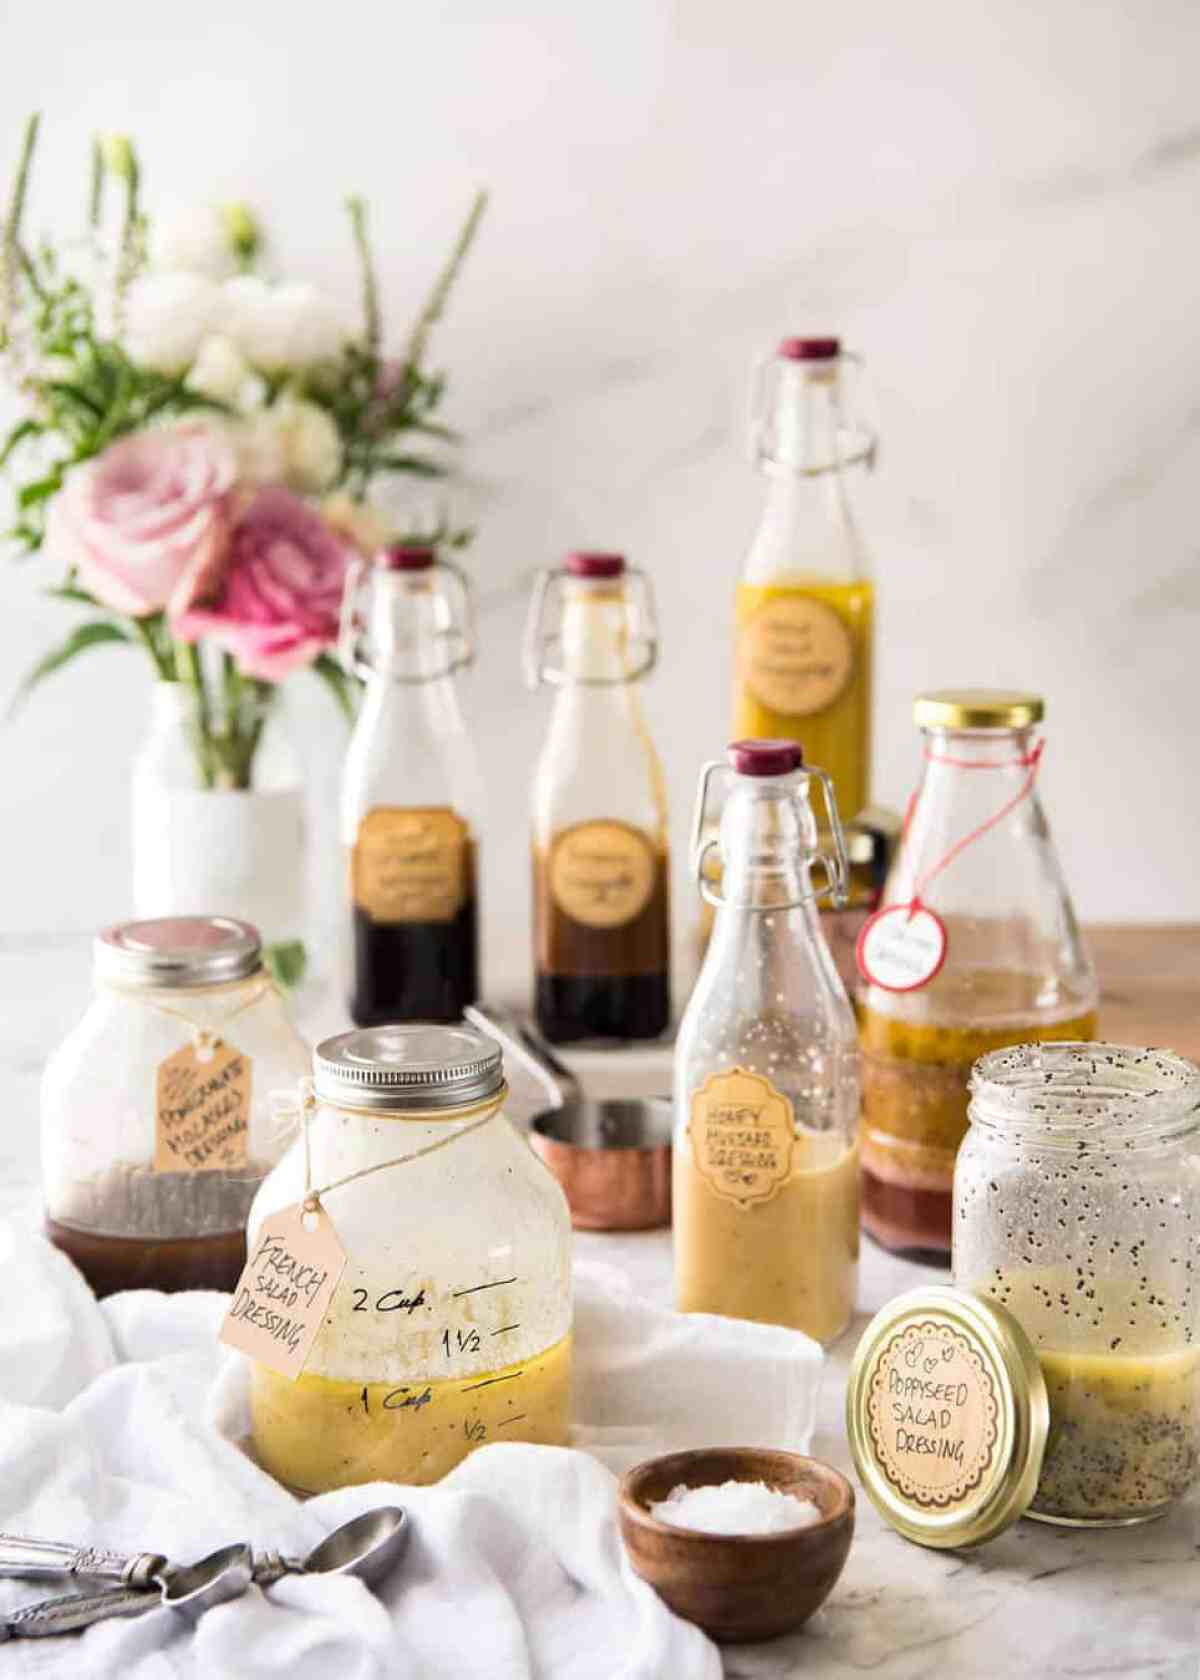 Easy Salad Dressing Recipes - Long Shelf Life, Ready To Use www.recipetineats.com